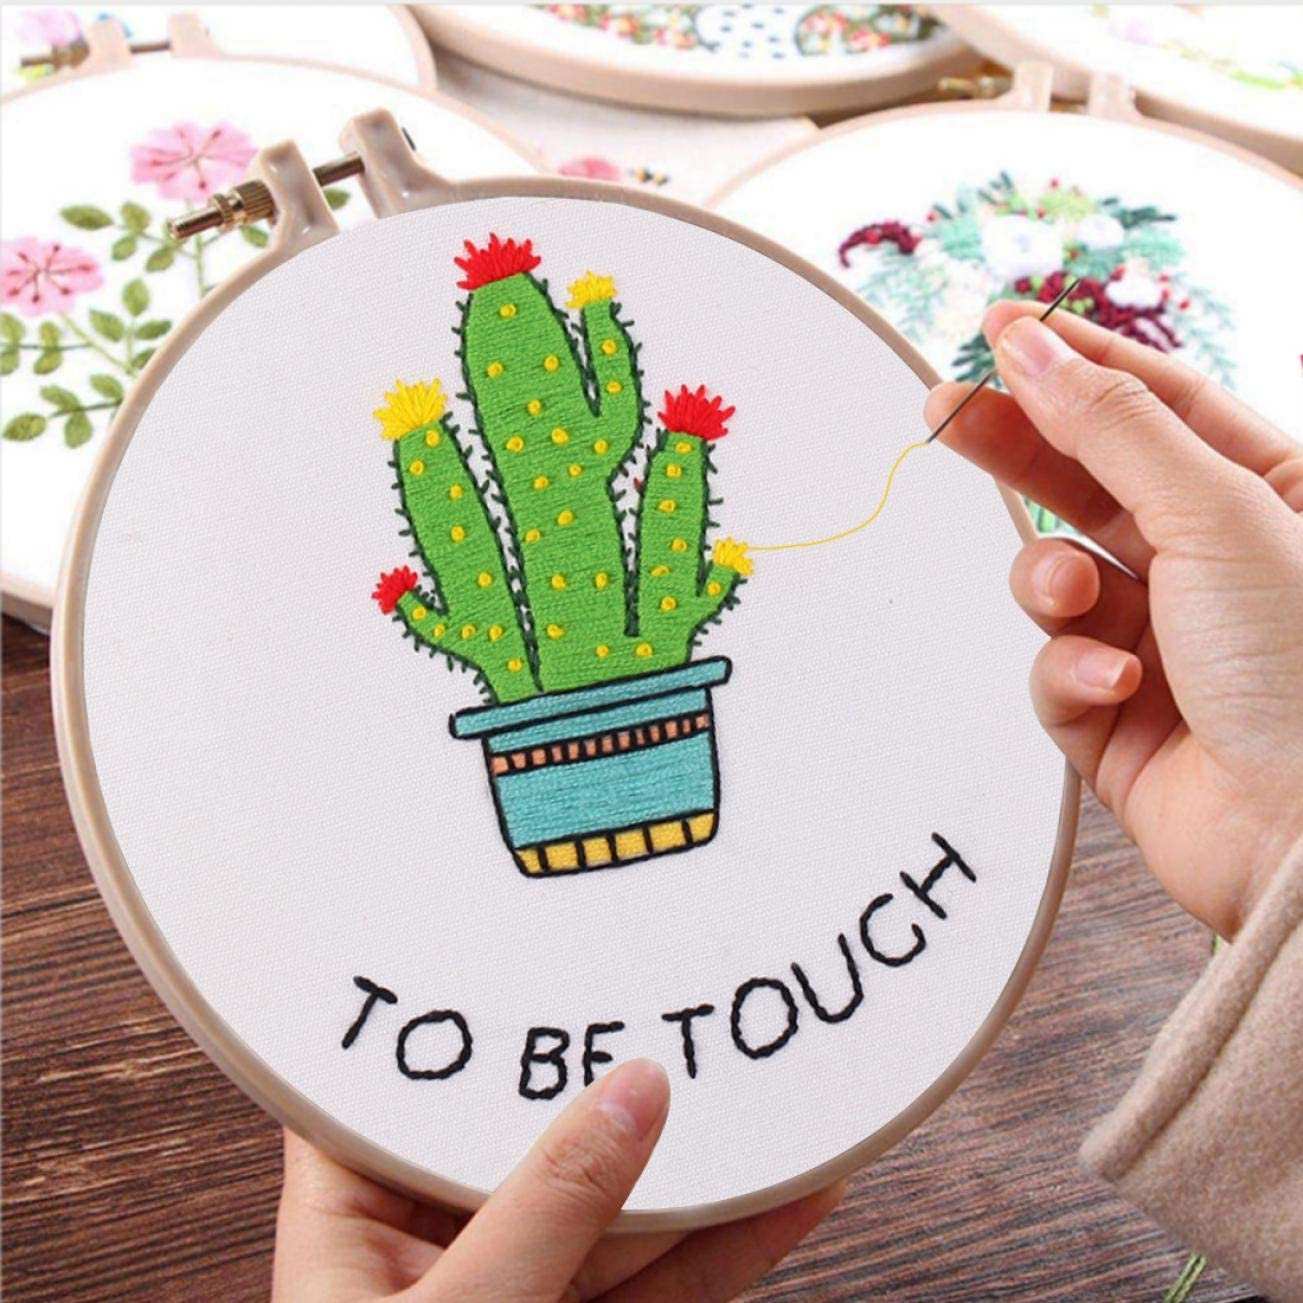 Nuberlic Embroidery Kit with Pattern Cactus Cross Stitch Starters Kit for Beginners Adults Needlepoint with Embroidery Hoop Cloth Needles Threads